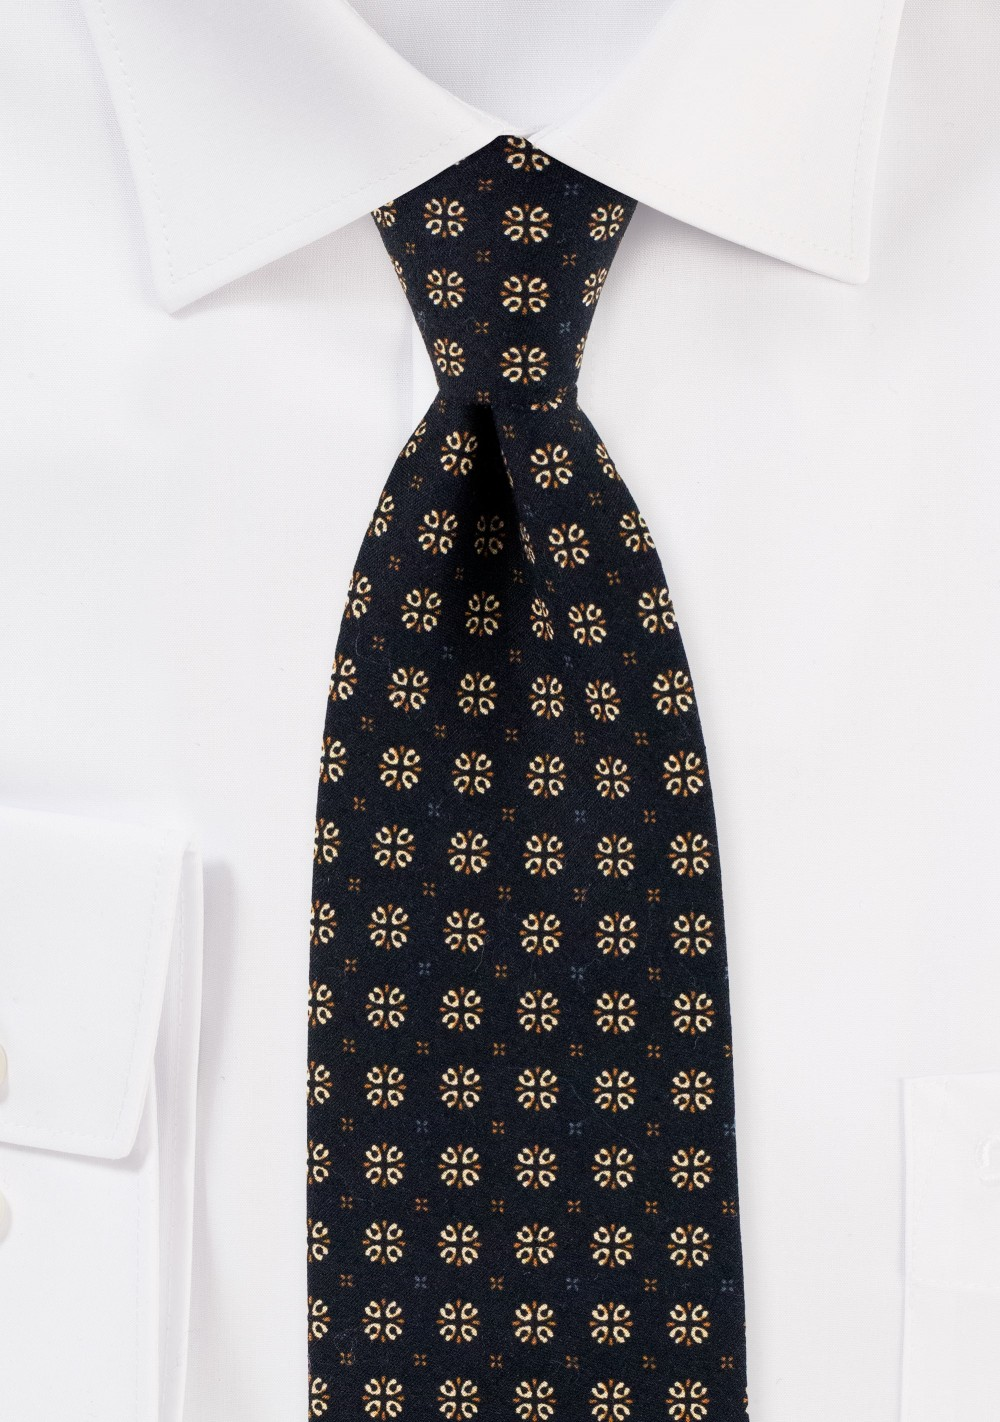 Black and Gold Geometric Print Tie in Cotton